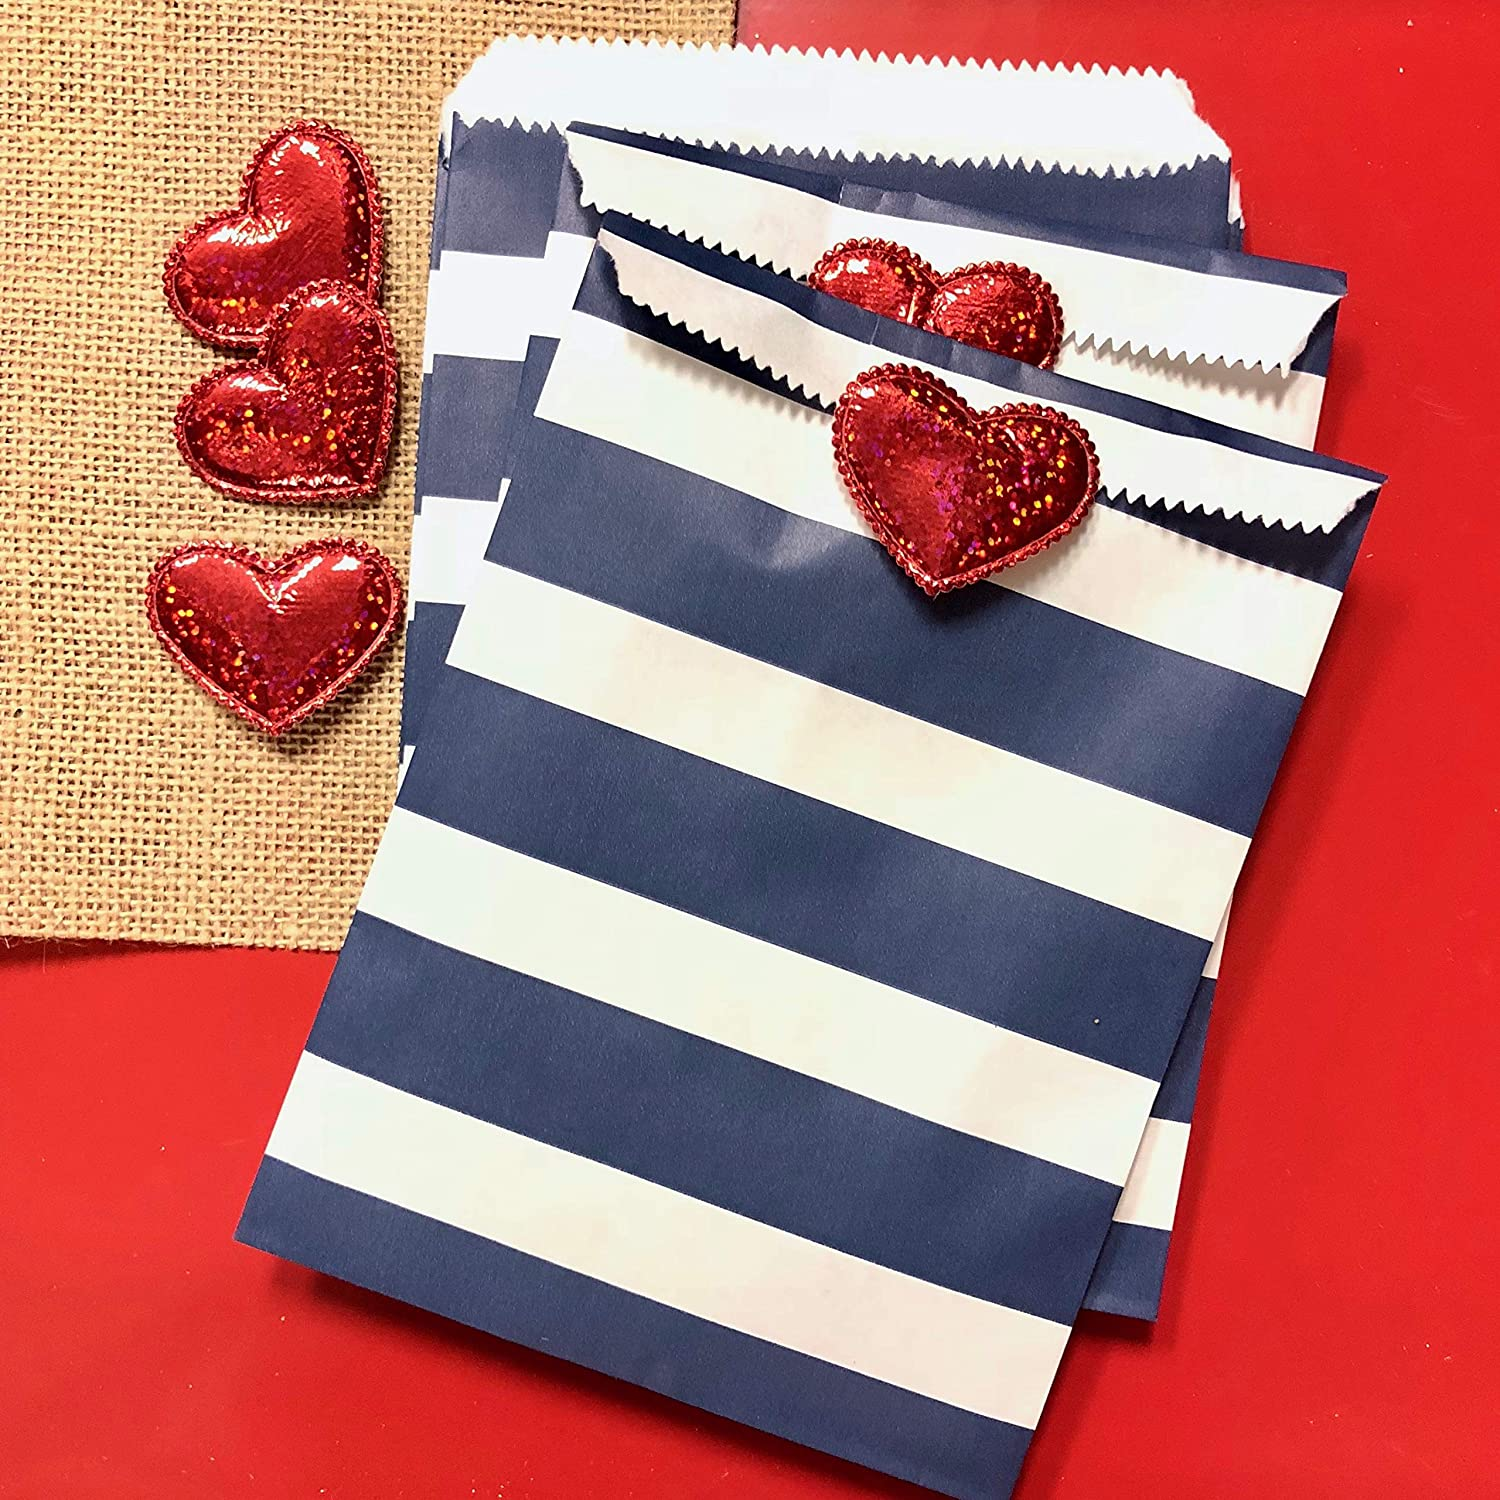 192 Ct Party Favor 30 ...the party continues Luncheon Napkins TradeMart Inc 519794